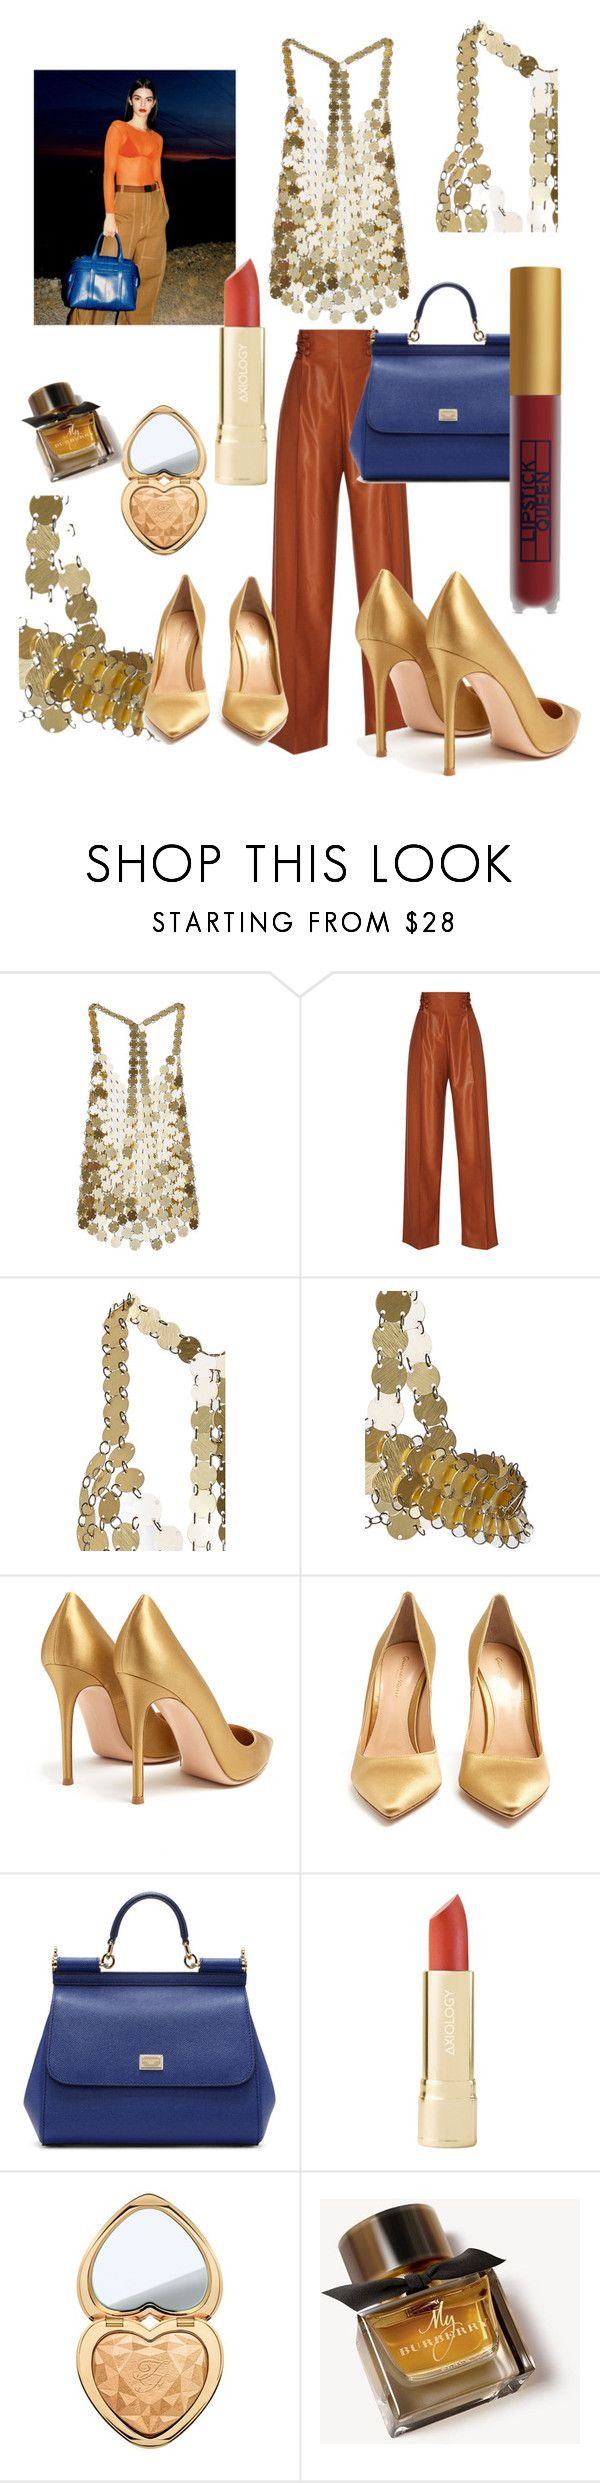 """""""Kendall"""" by fabianajuan ❤ liked on Polyvore featuring Gianvito Rossi, Angelo, Dolce&Gabbana, Too Faced Cosmetics, Burberry and Lipstick Queen"""